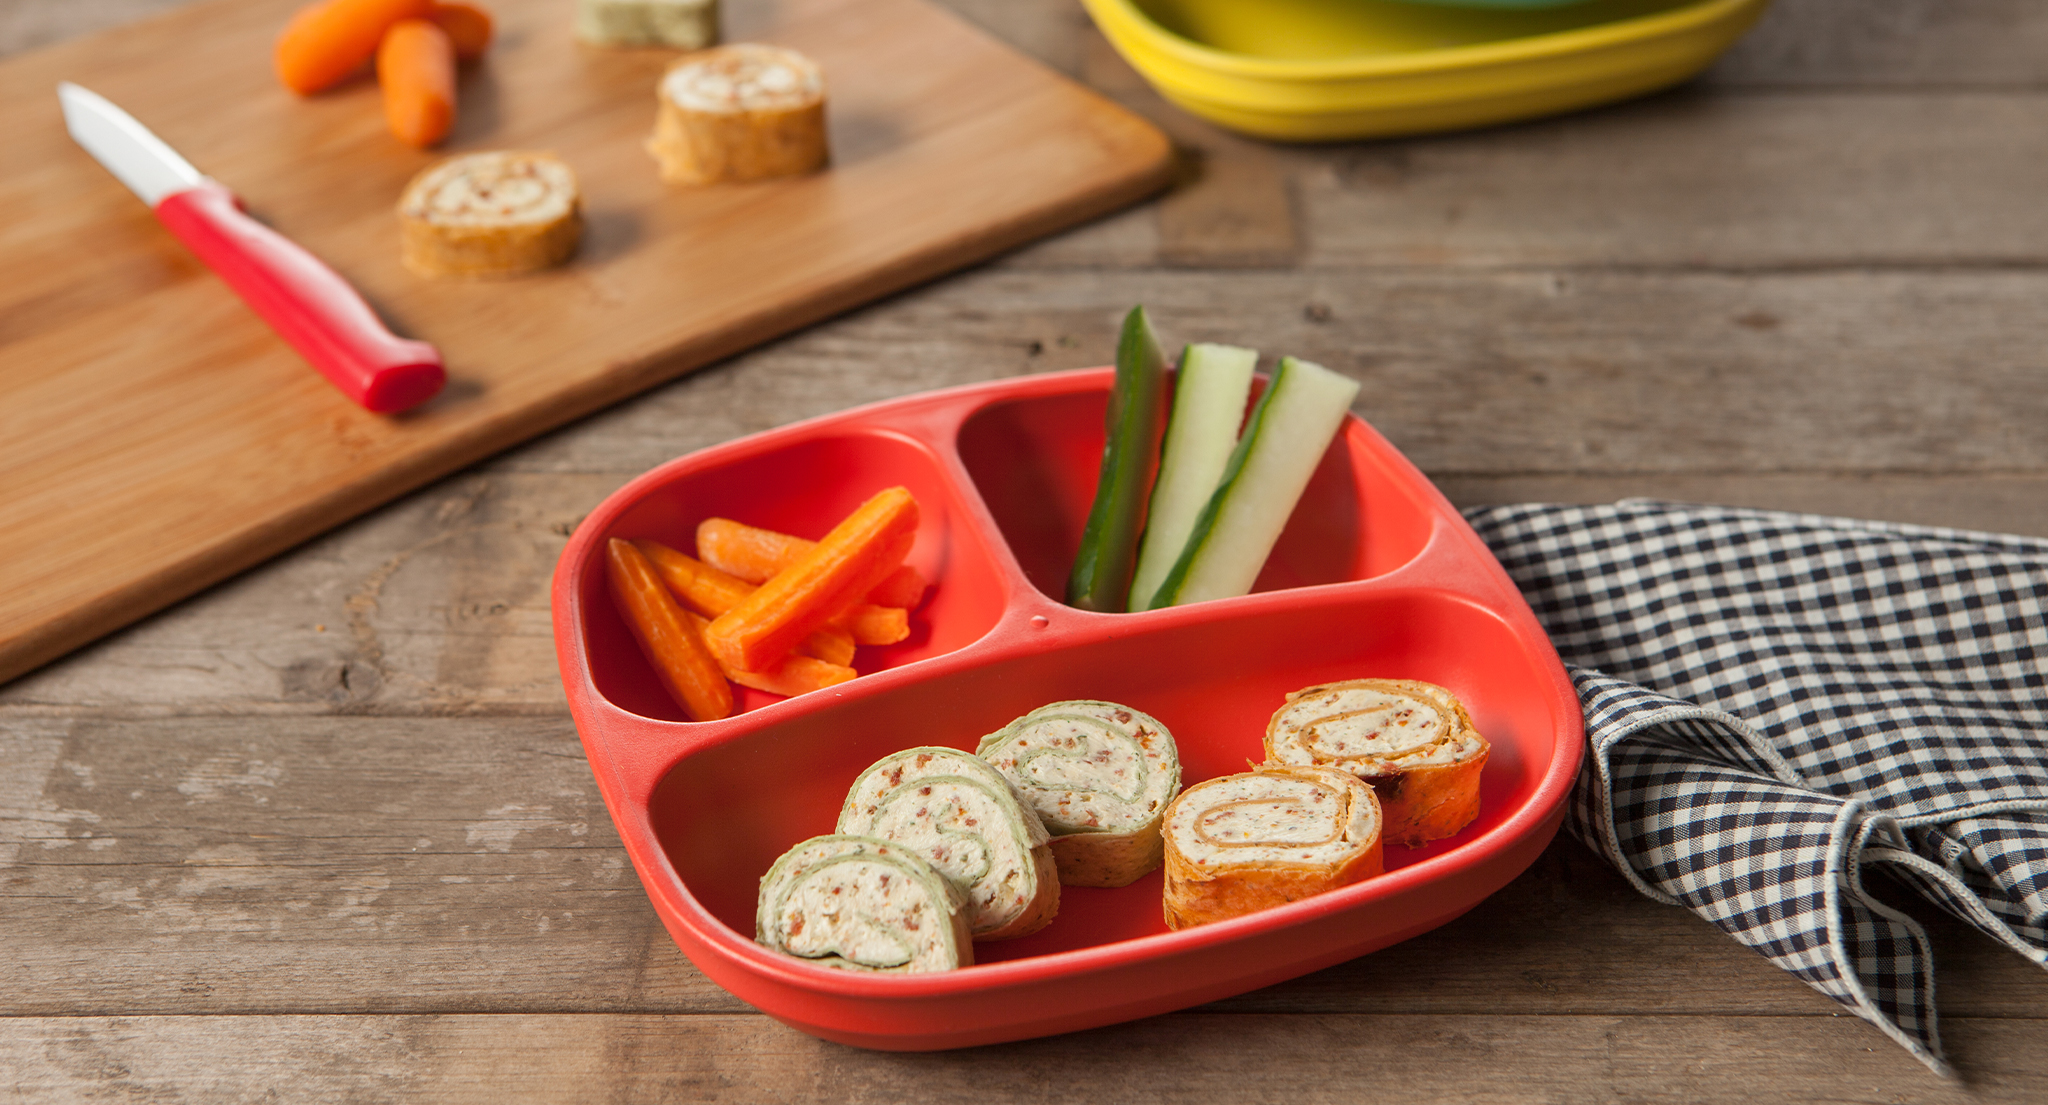 cream cheese pinwheels with fresh vegetables for an after school snack